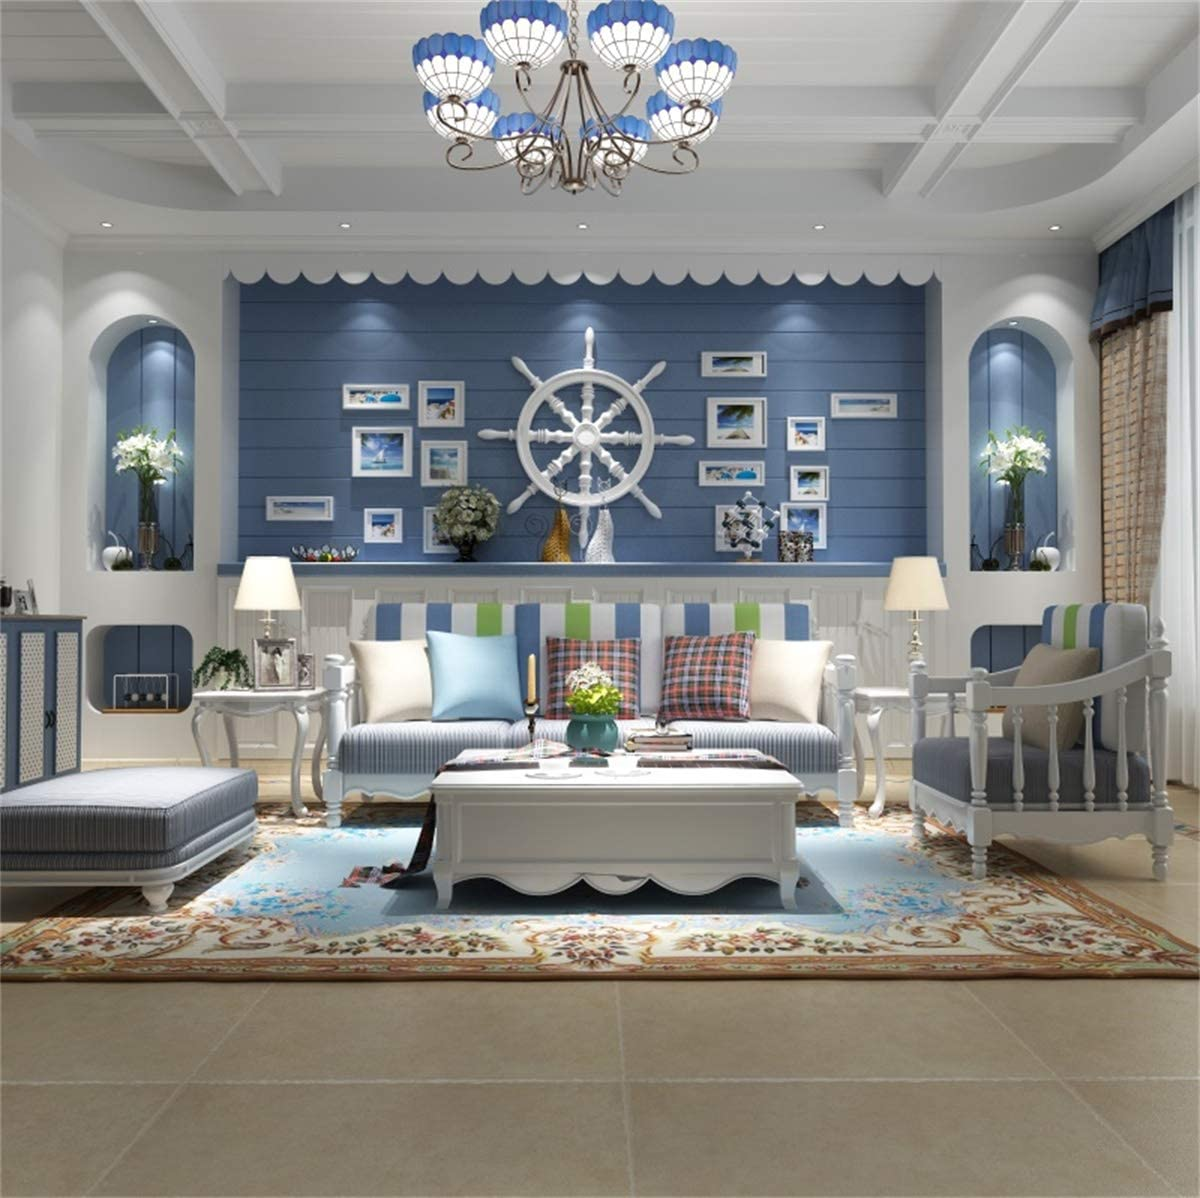 YEELE Classic Living Room Photography Backdrop 9x9ft Nautical Style Home Interior Background Blue Theme House Home Design Cozy Apartment Kids Adult Portrait Photo Studio Props Wallpaper